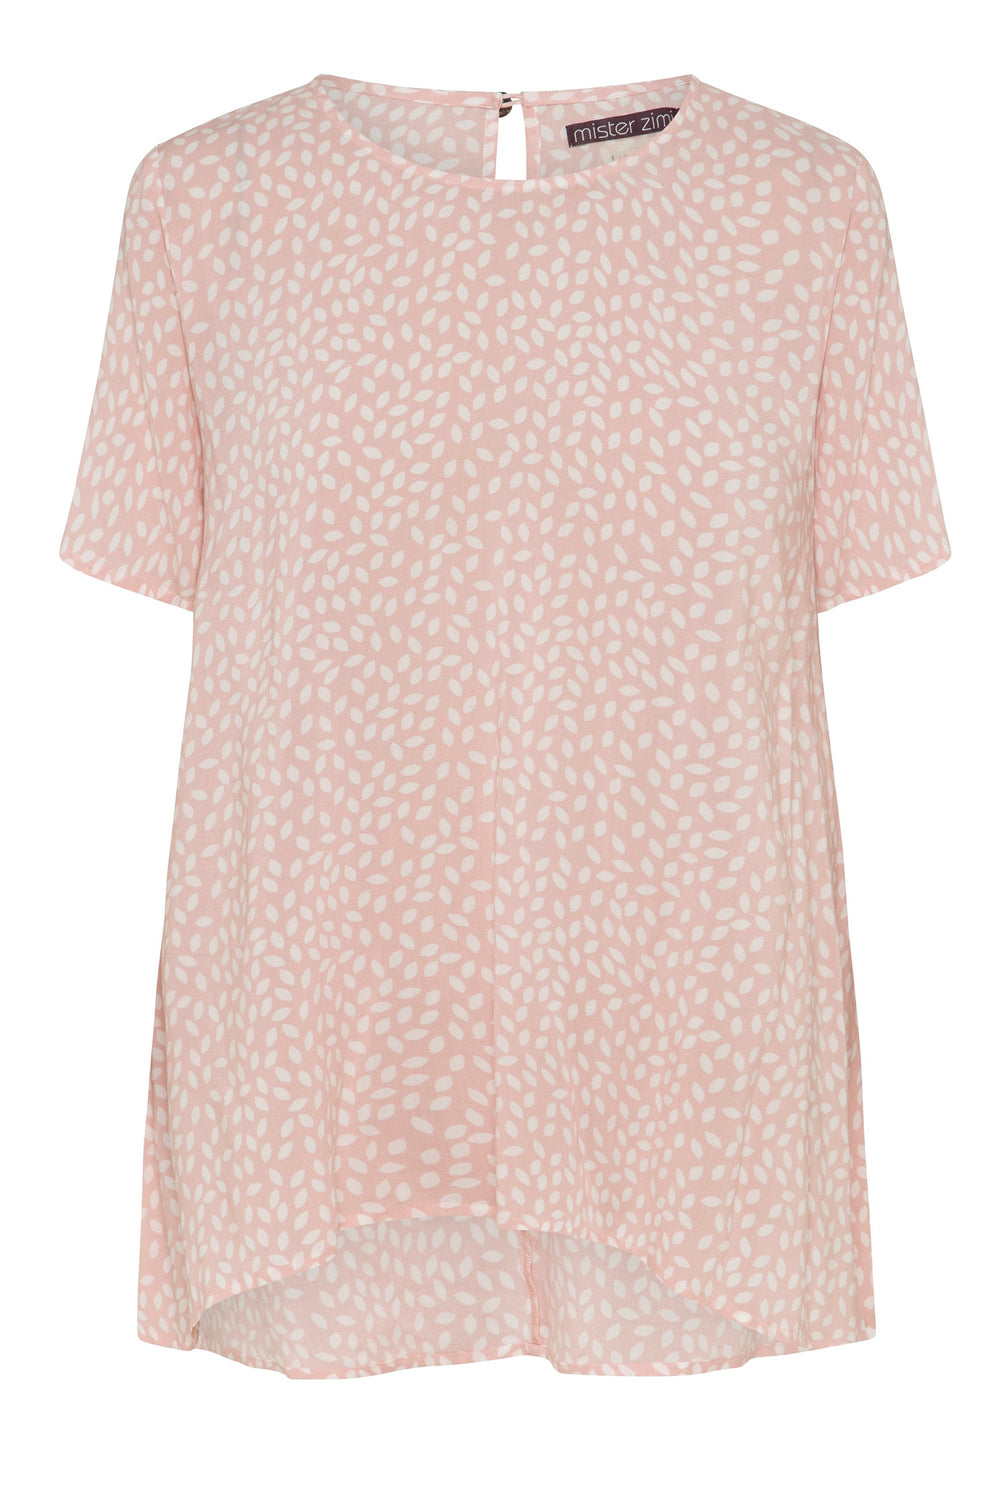 Daisy Top In Blossom